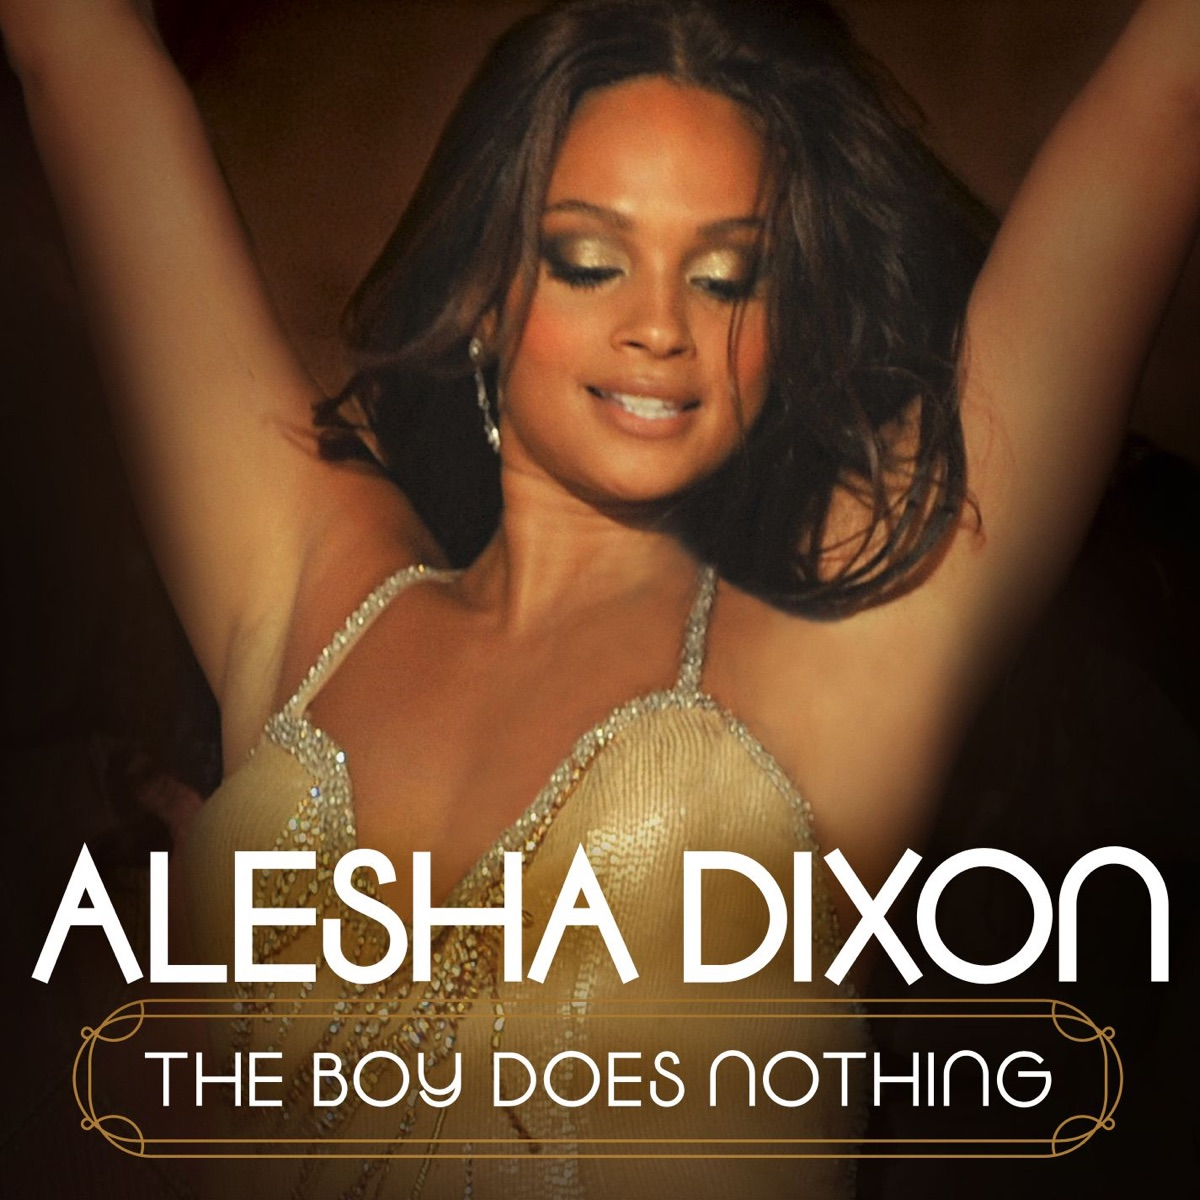 alesha dixon the boy does nothing download free